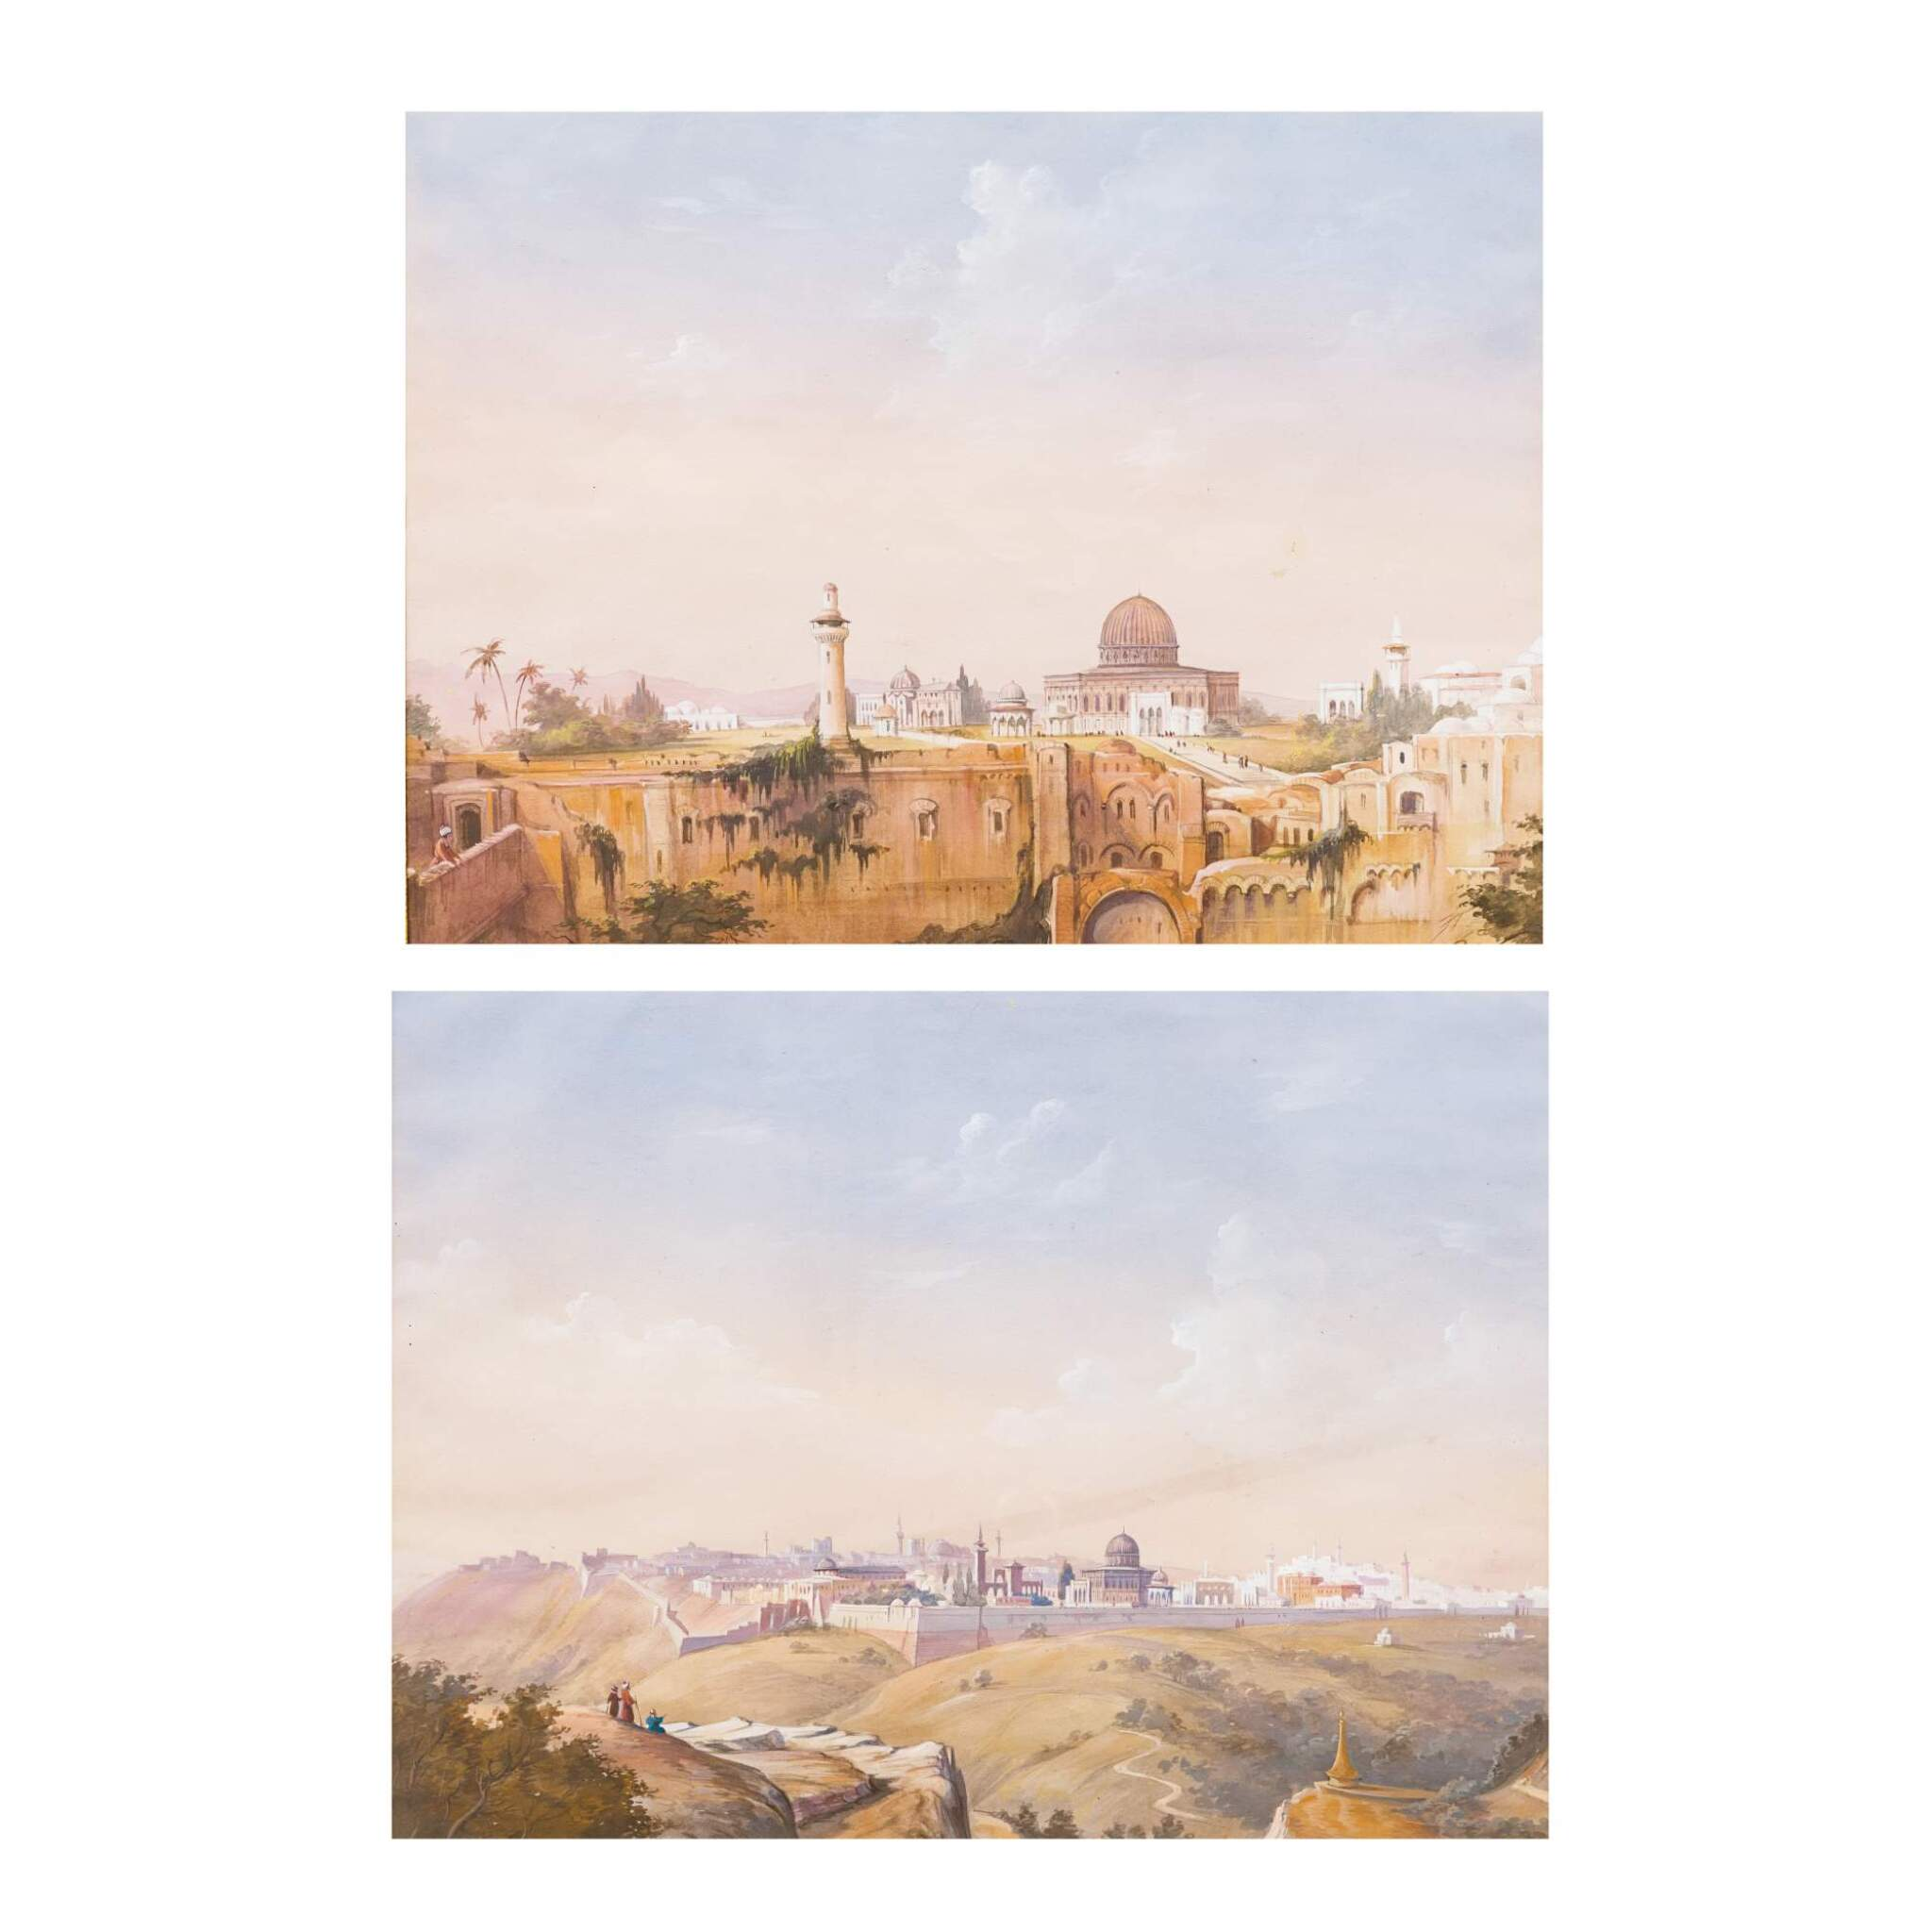 ECOLE FRANÇAISE DU DÉBUT DU XIXE SIÈCLE | VIEWS OF JERUSALEM WITH THE DOME OF THE ROCK  [VUES DE JÉRUSALEM AVEC LE DÔME DU ROCHER]